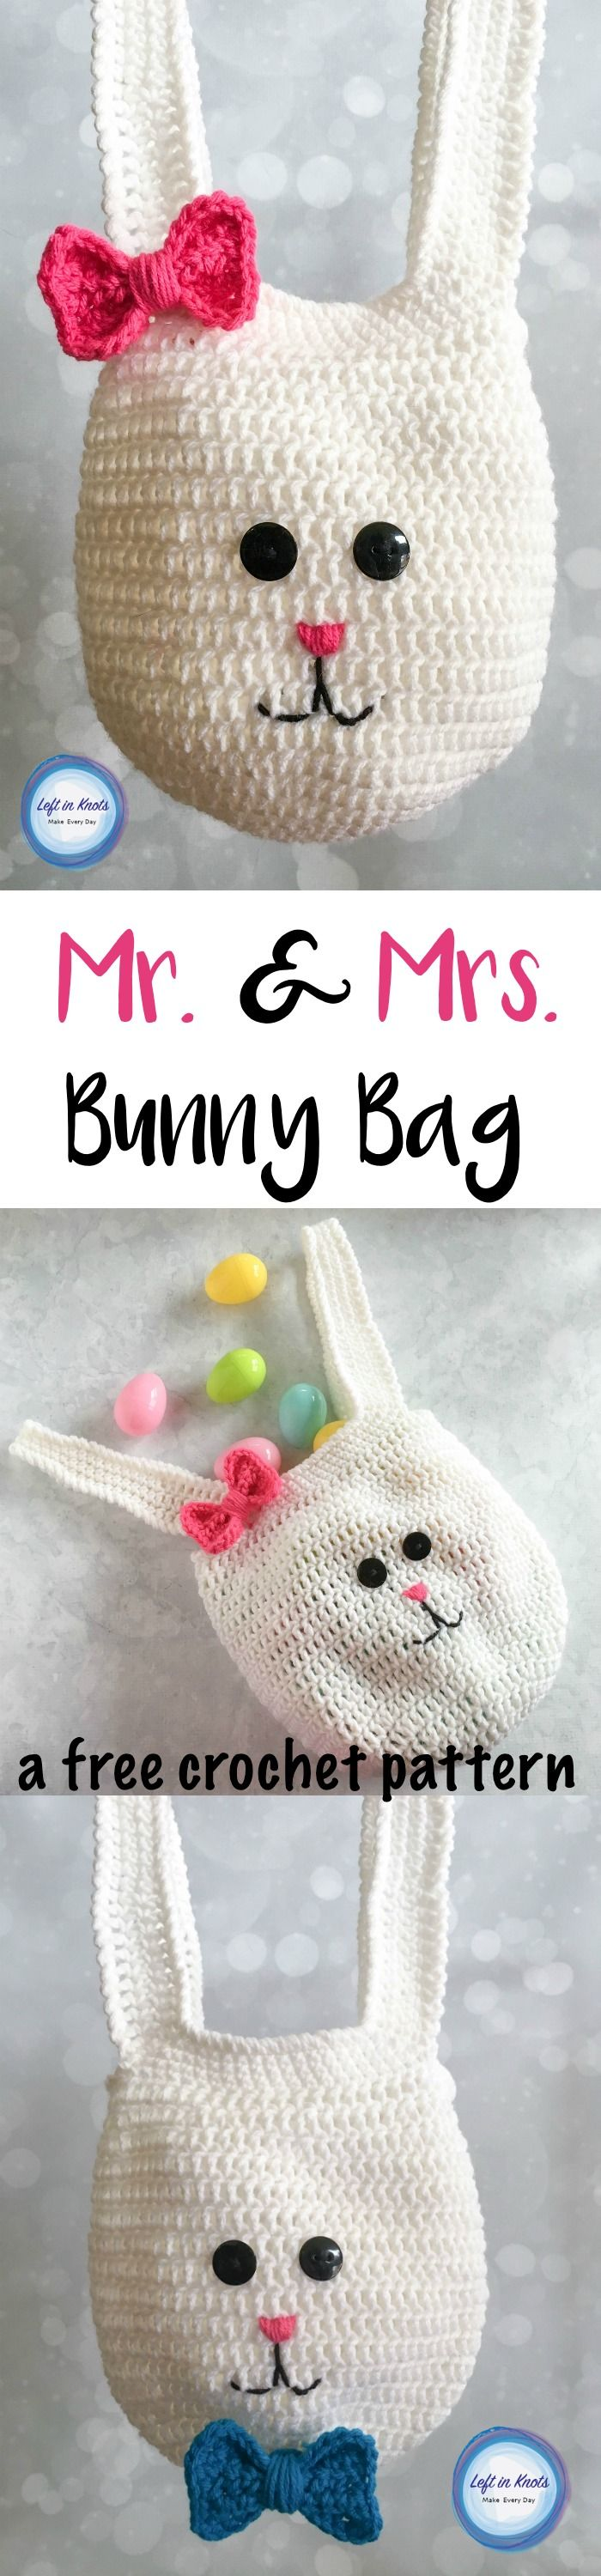 Mr. and Mrs. Bunny Bag | Bolsos, Bolso tejido y Tejido